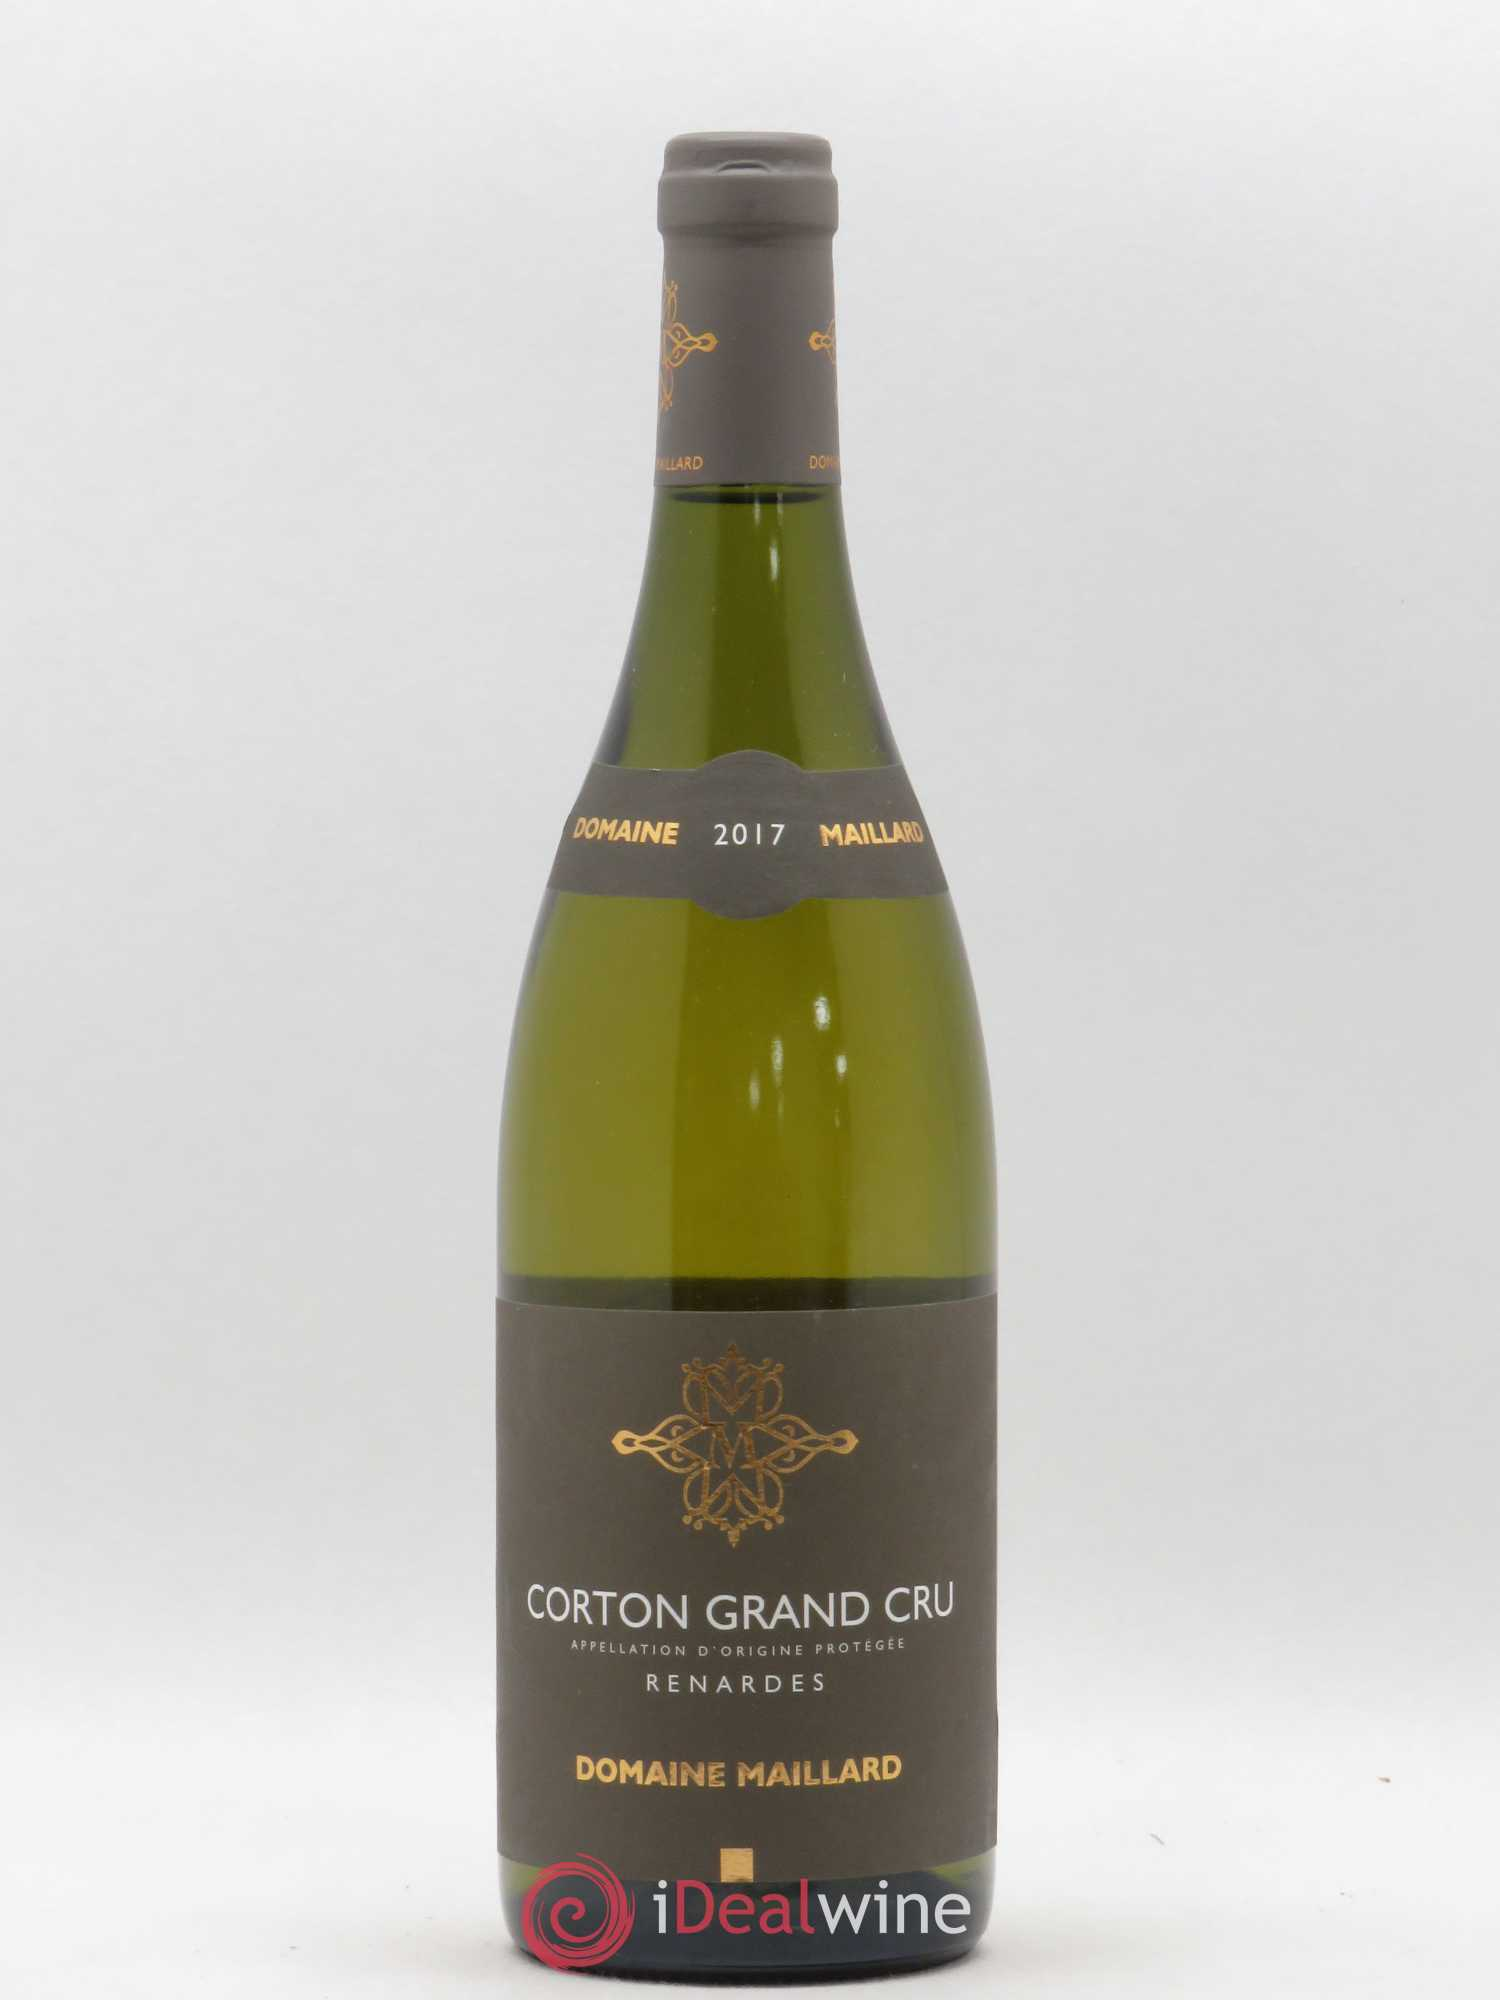 Corton Grand Cru Renardes Domaine Maillard 2017 - Lot of 1 Bottle